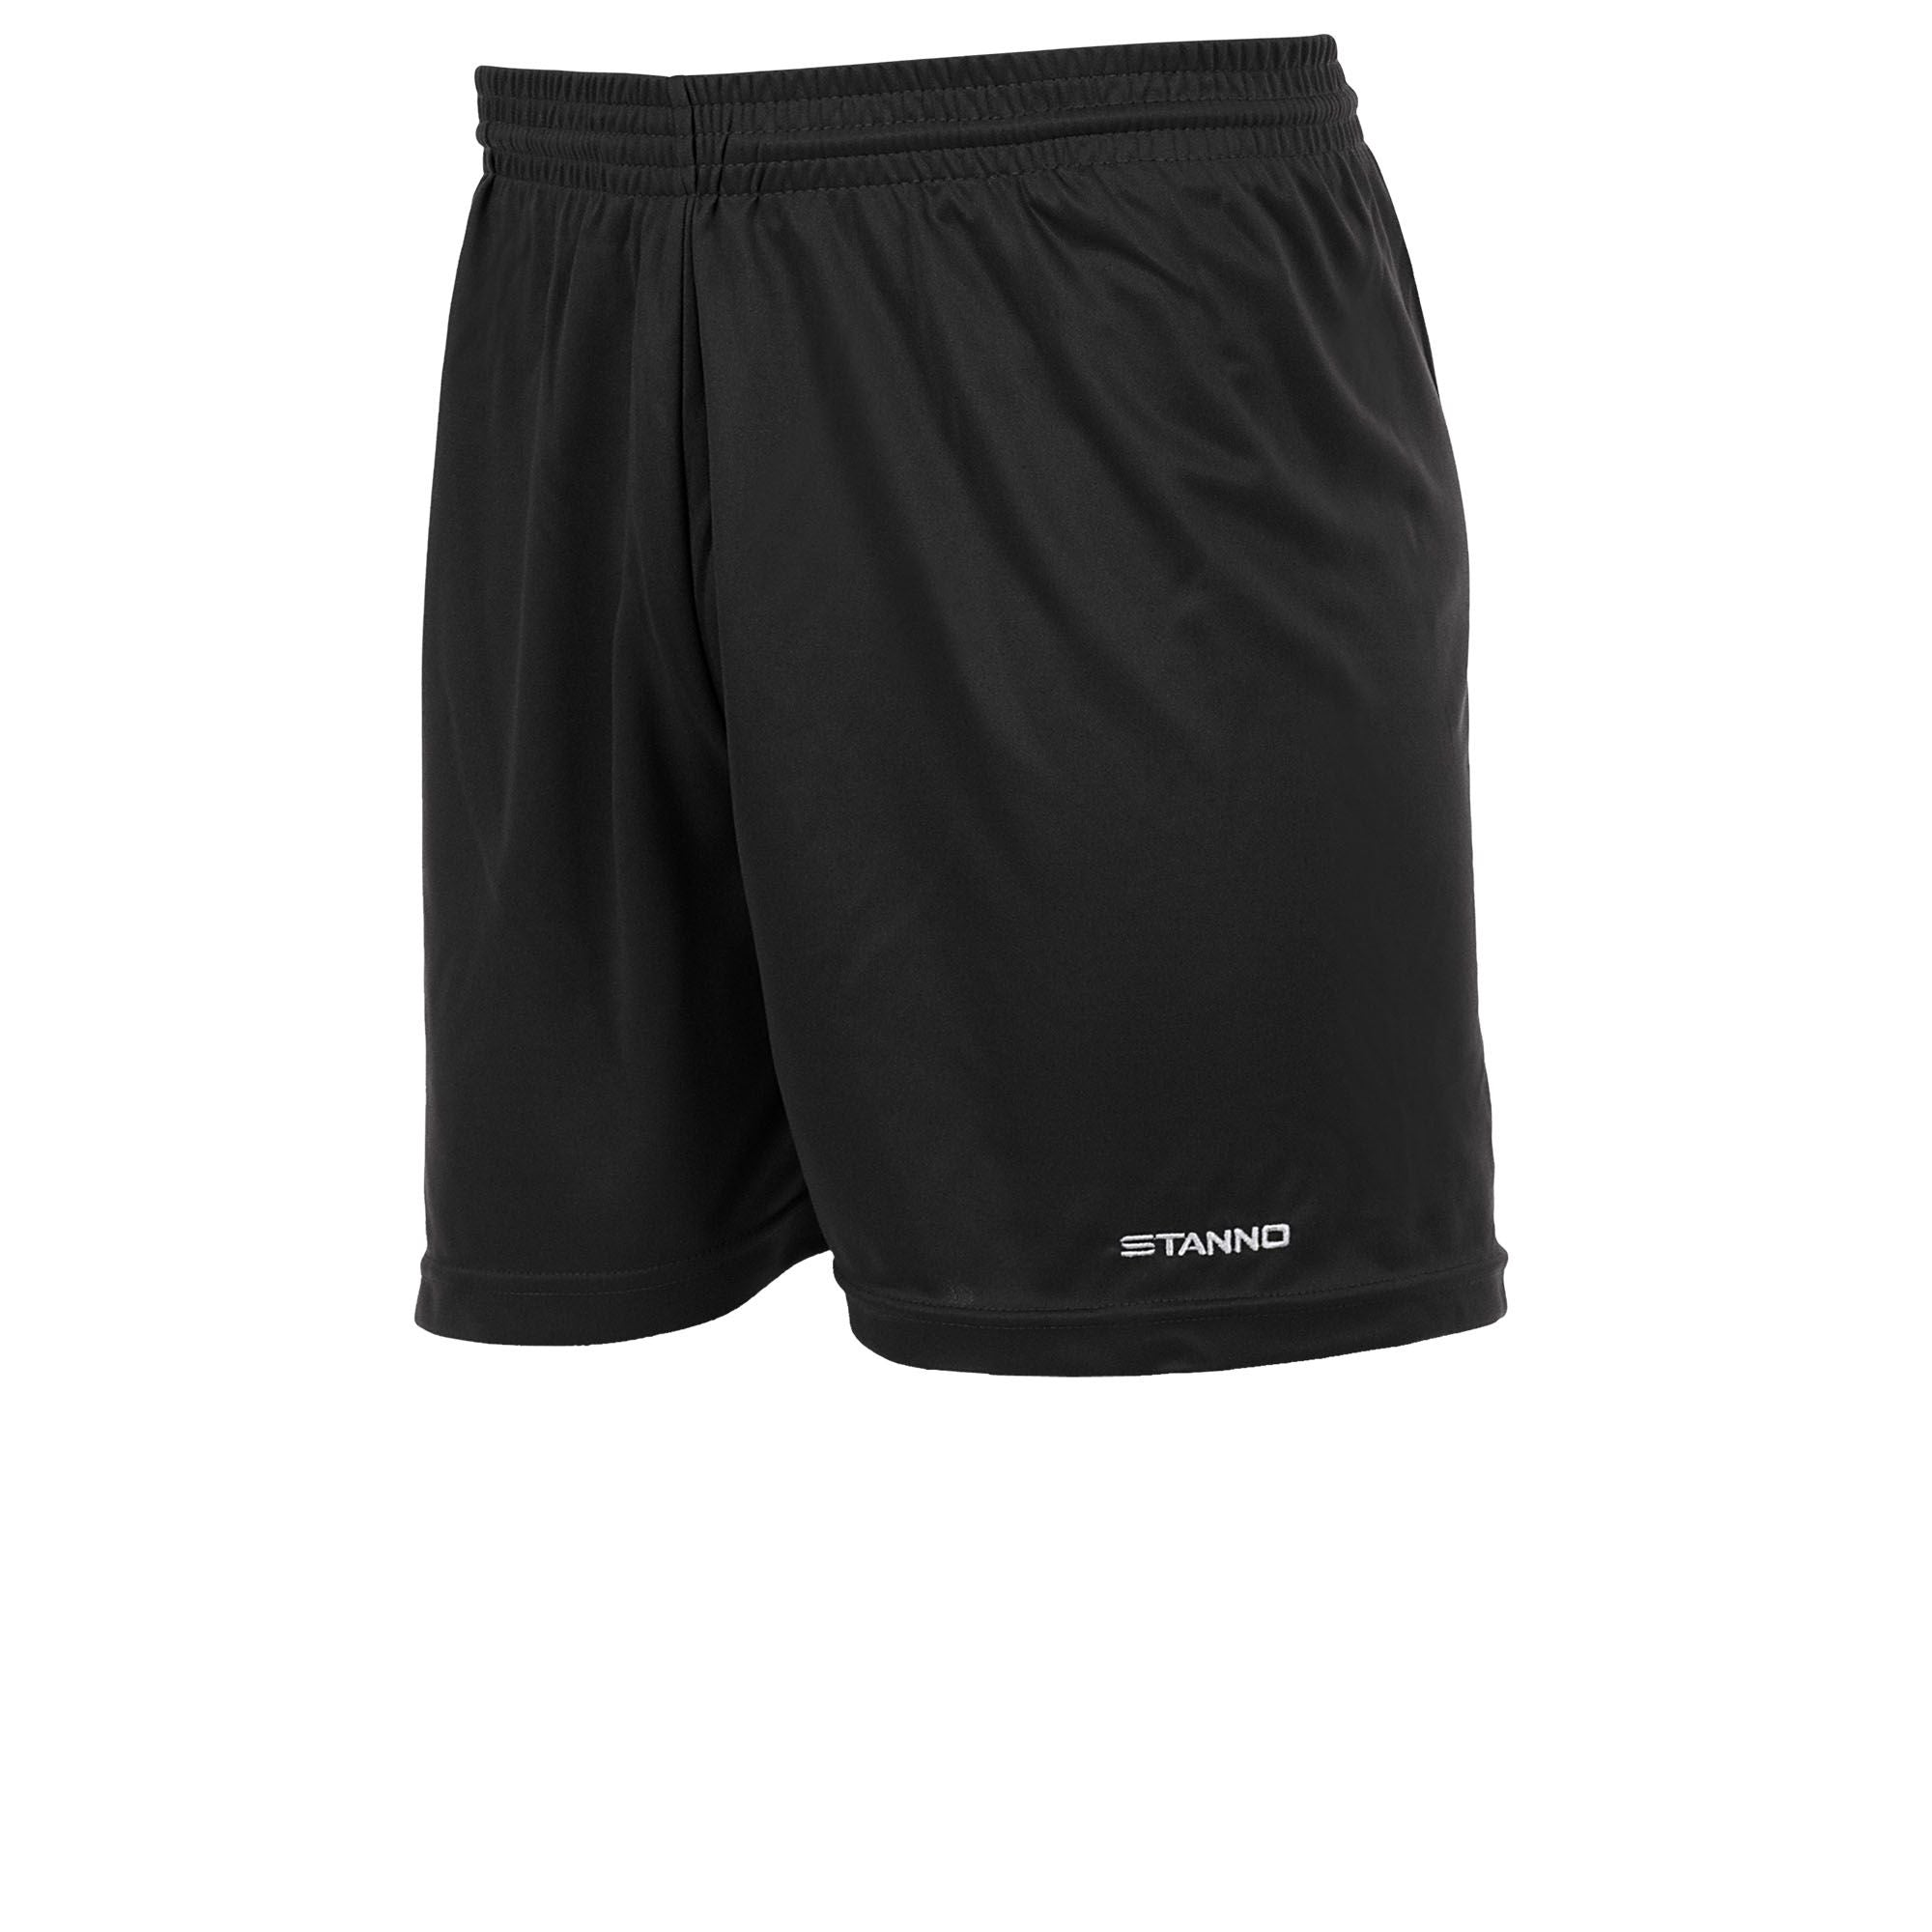 Dexters - Away - Stanno Club Shorts - Black